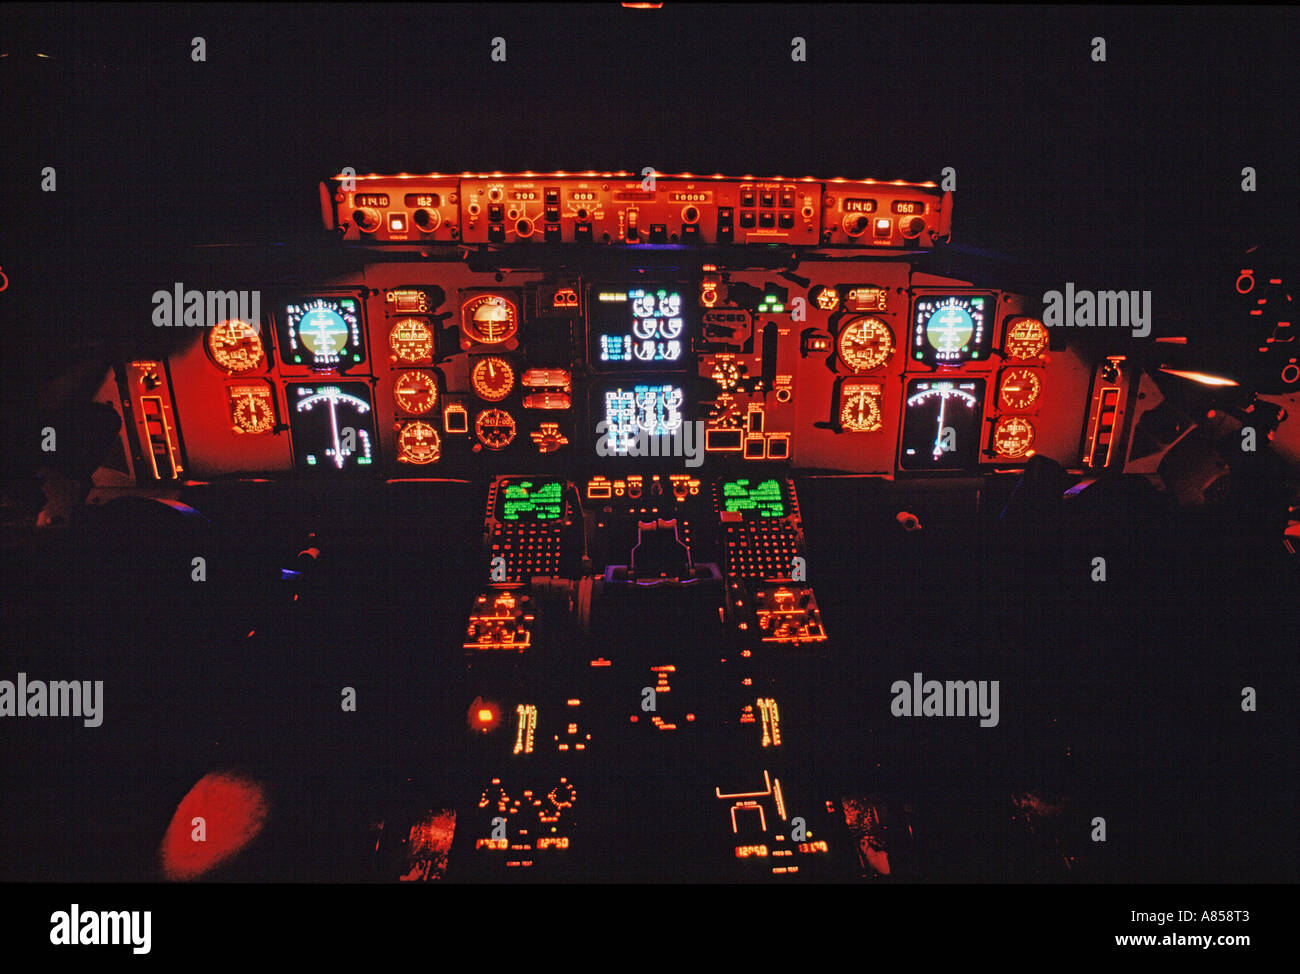 Flight deck simulator of Boeing 767 passenger jet aircraft  Night